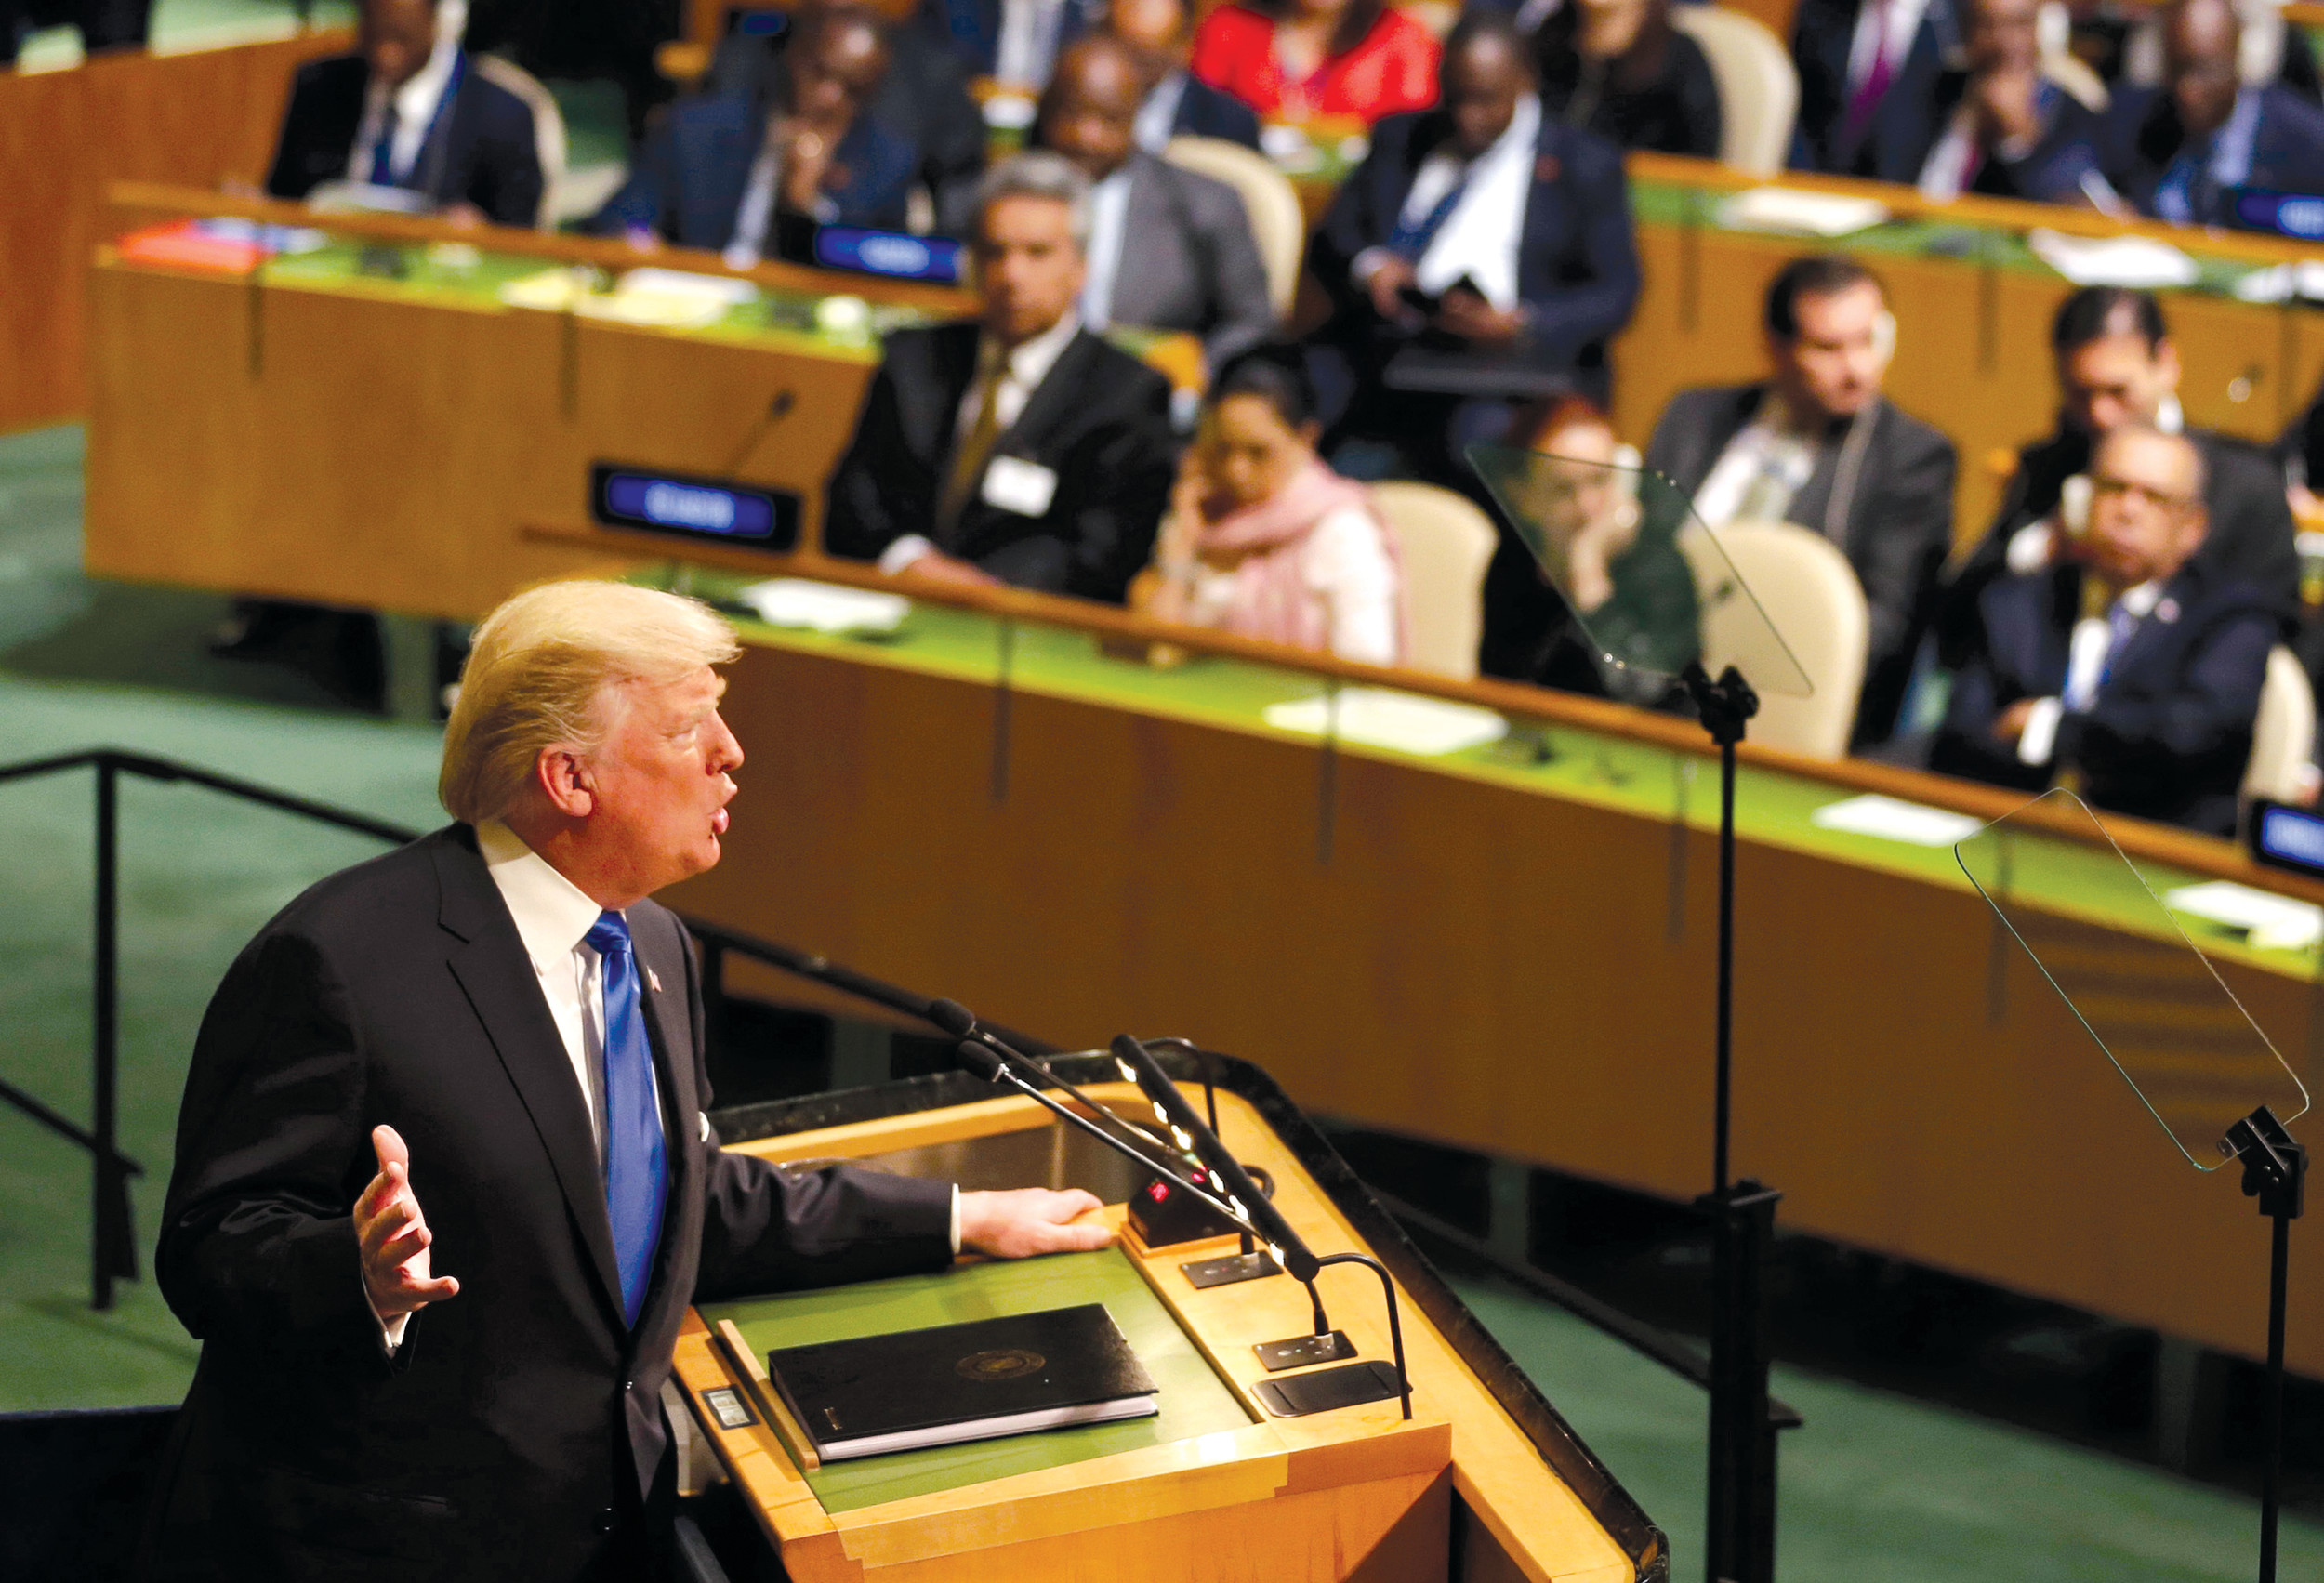 In debut United Nations  appearance, Trump says 'bureaucracy' stymieing potential